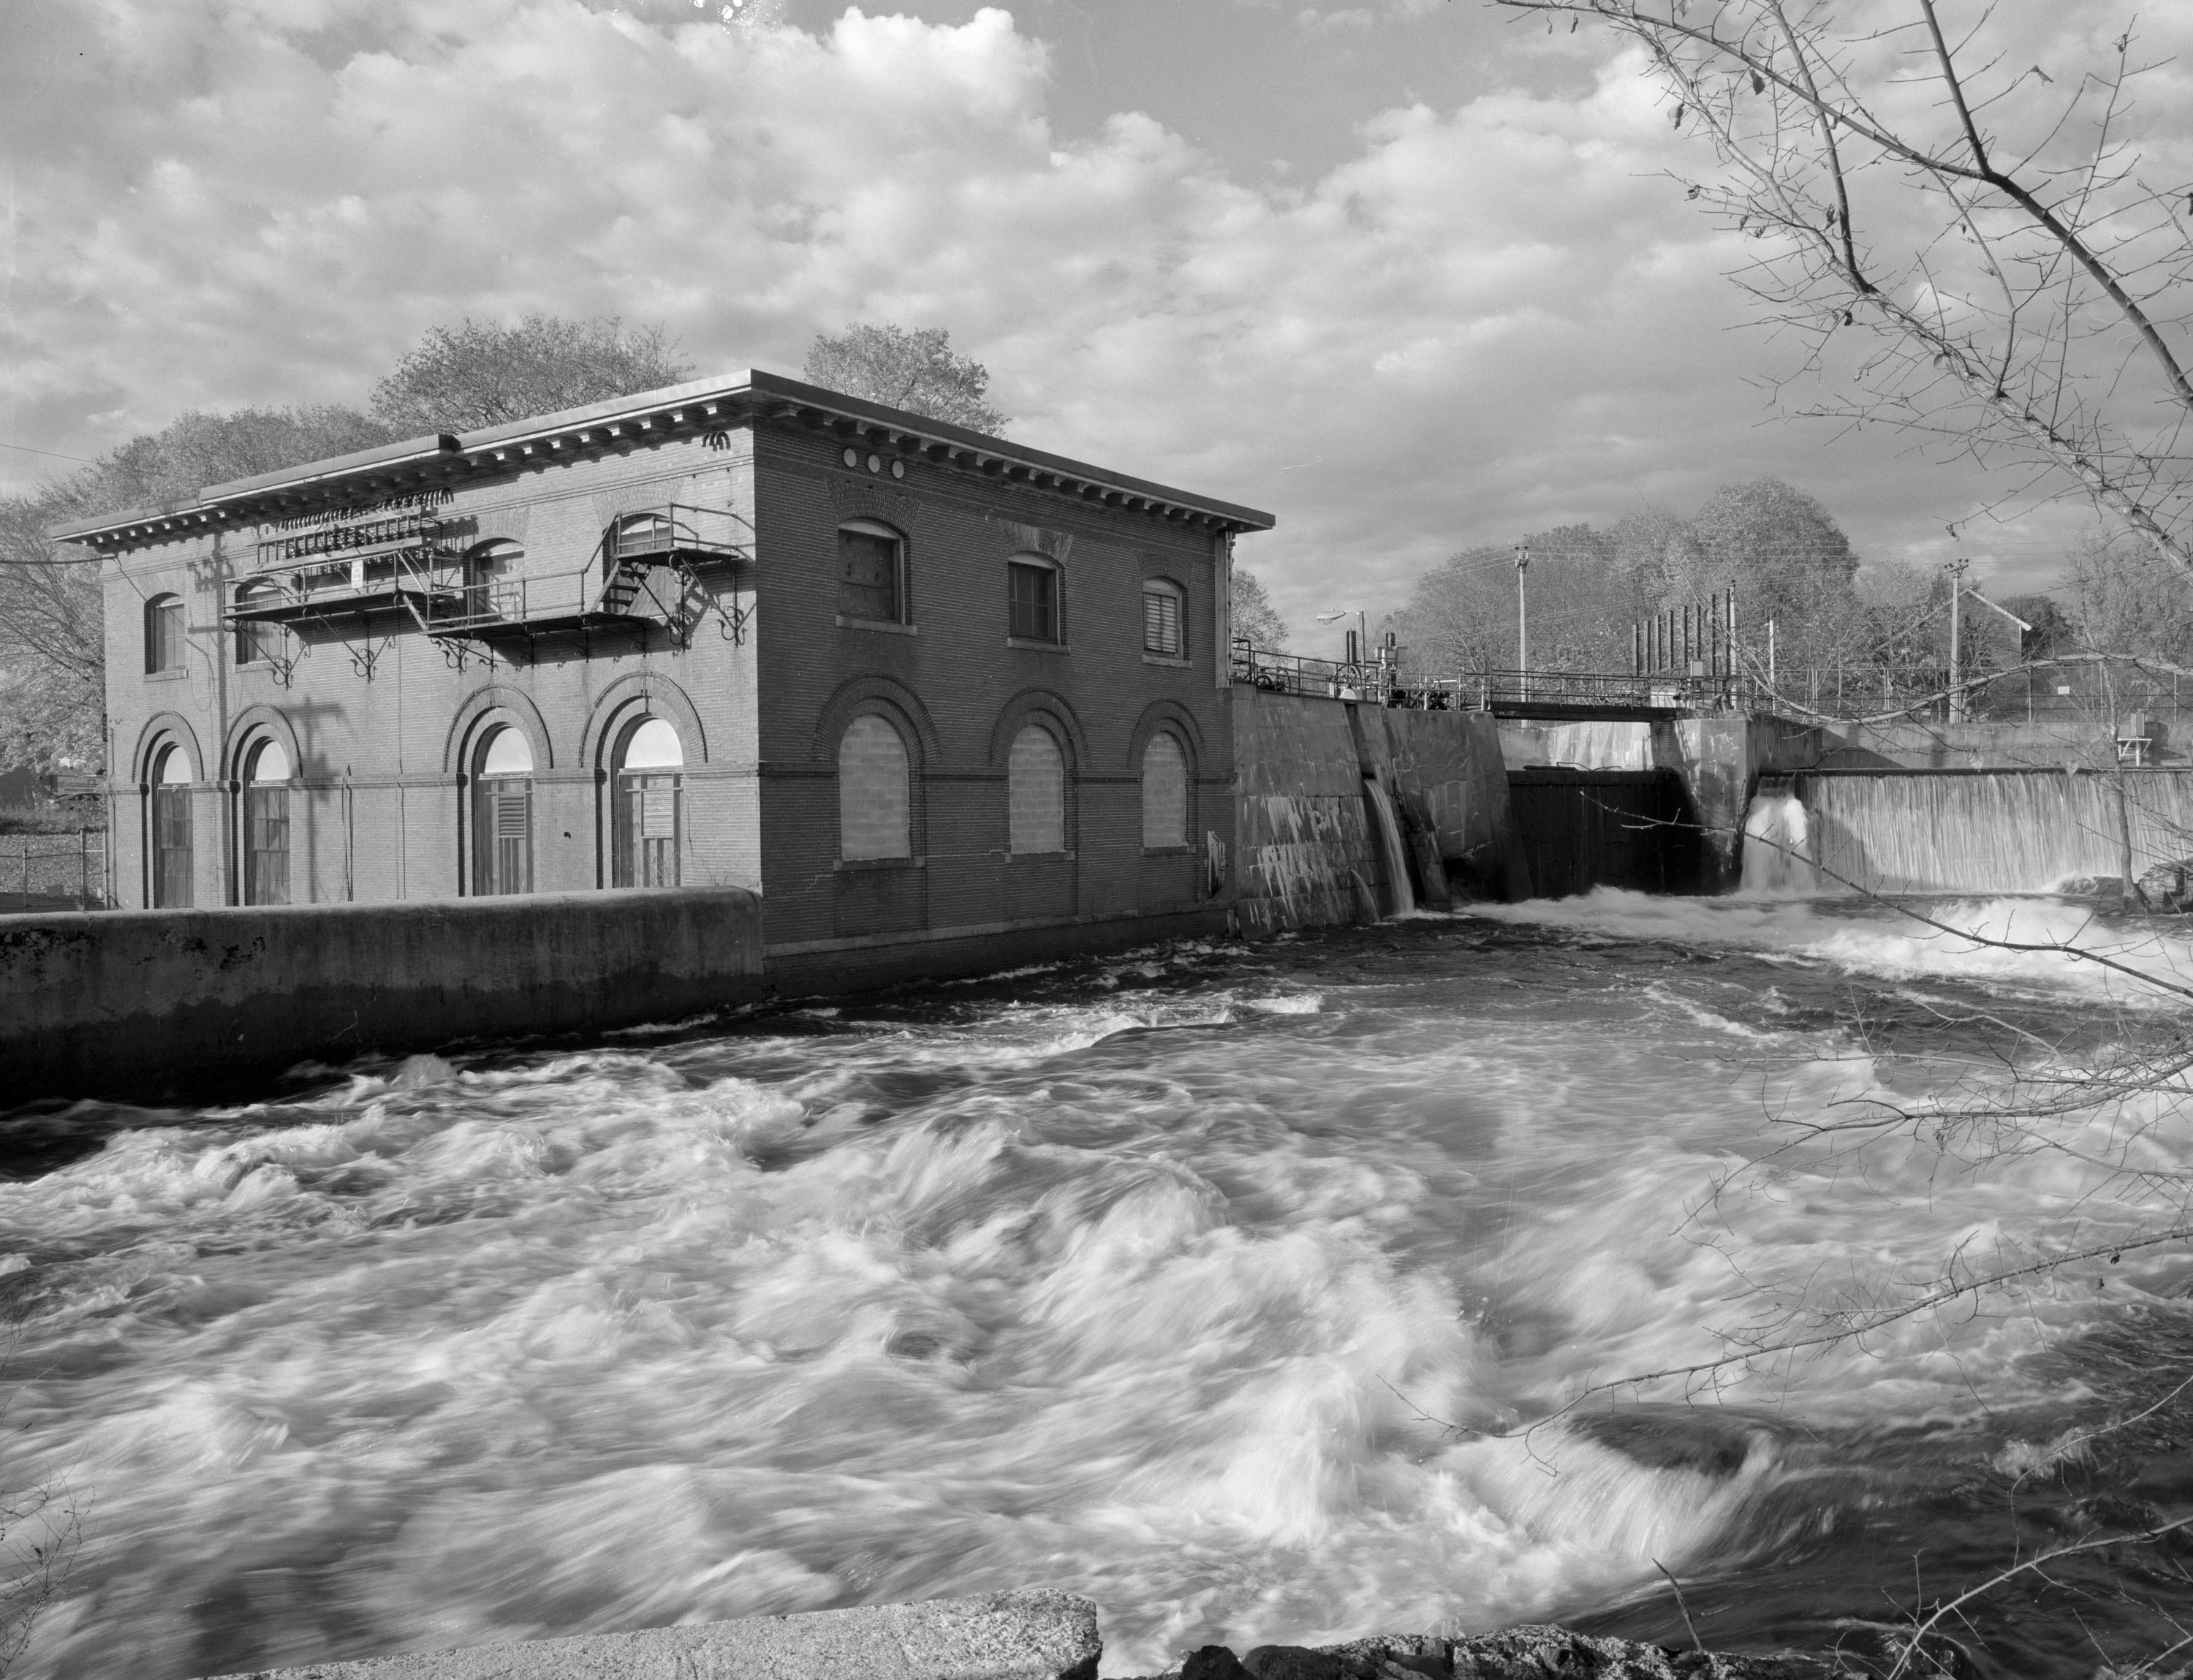 HABS/HAER Photography hydroelectric